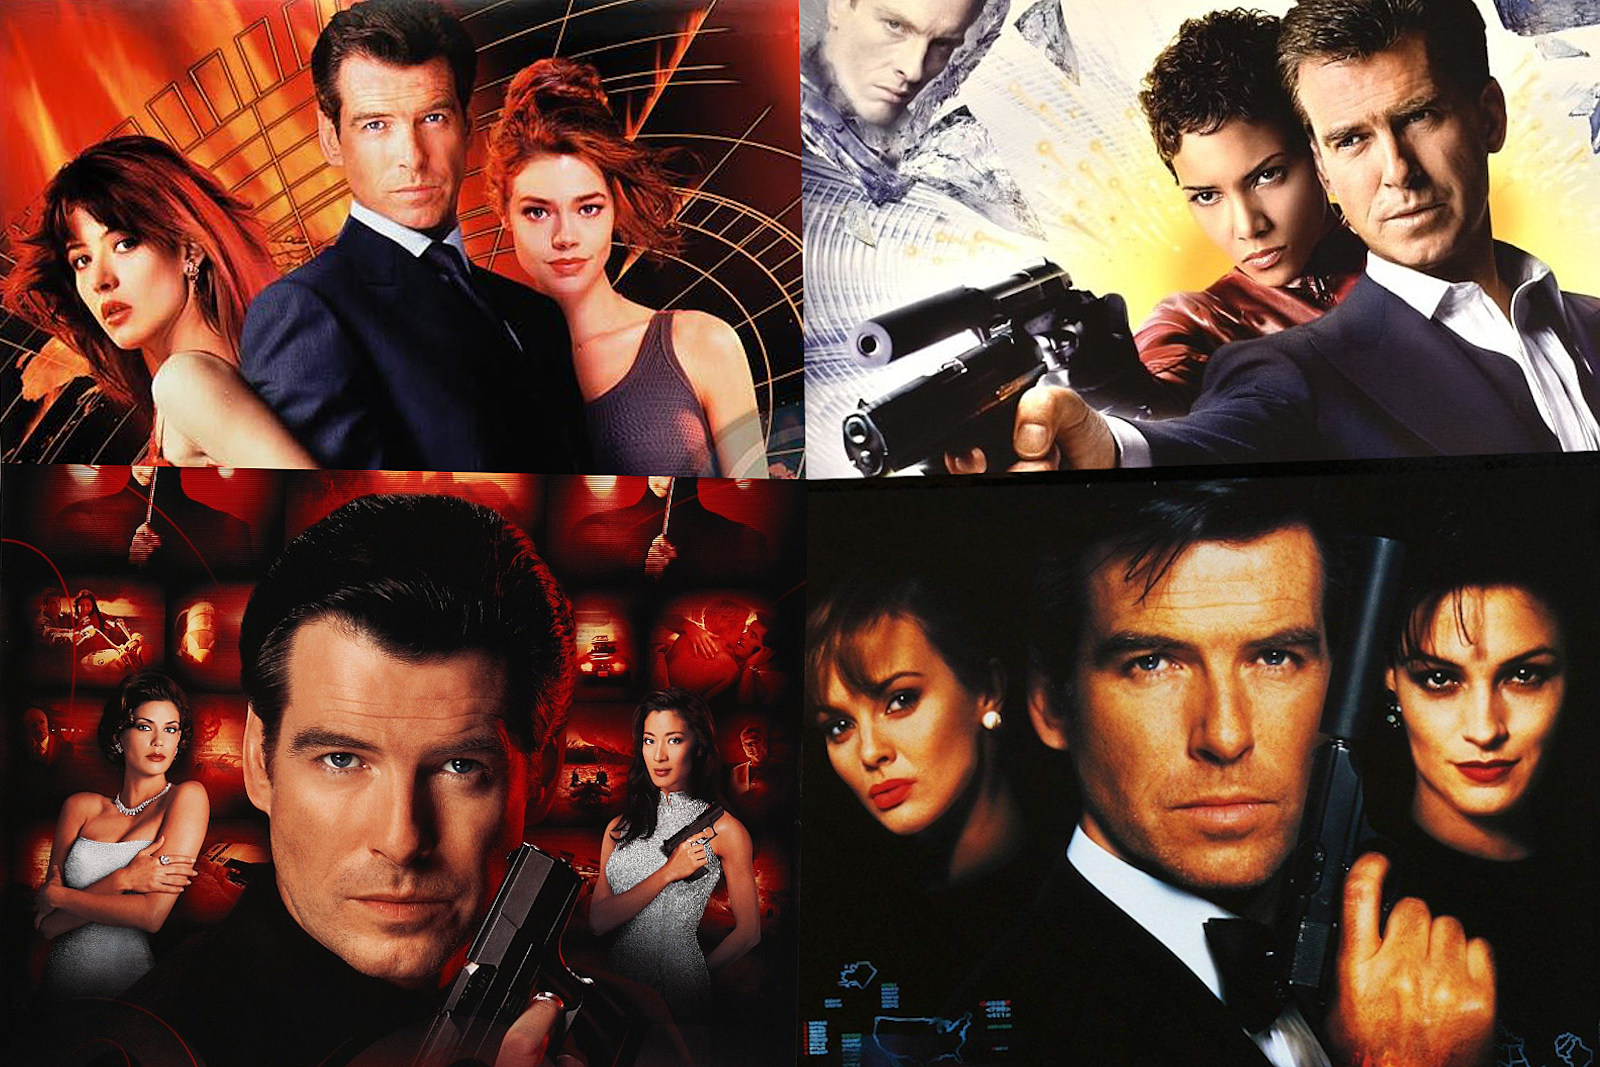 The Stories Behind All Four Pierce Brosnan James Bond Movies